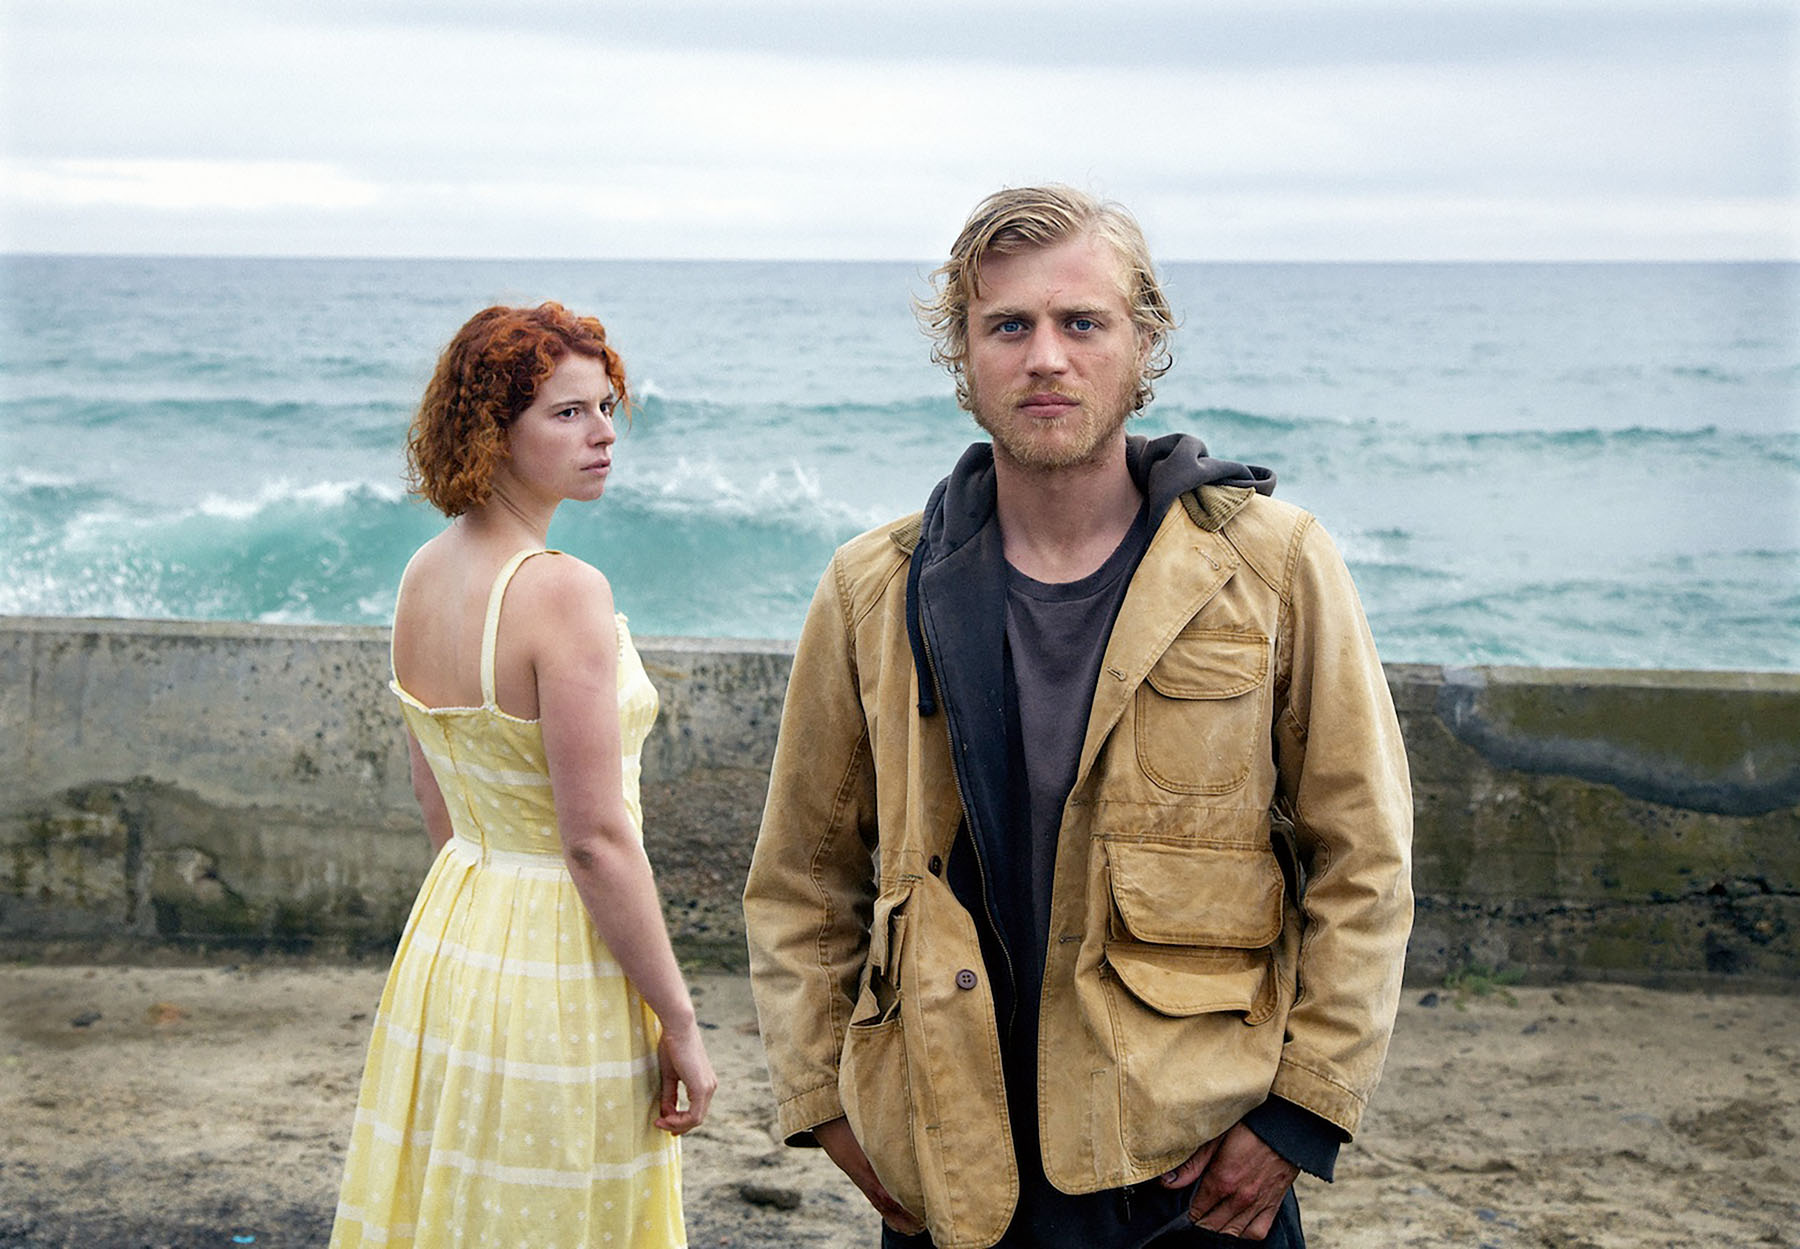 'Beast' Review: A Chilling Tale of Love and Suspicion